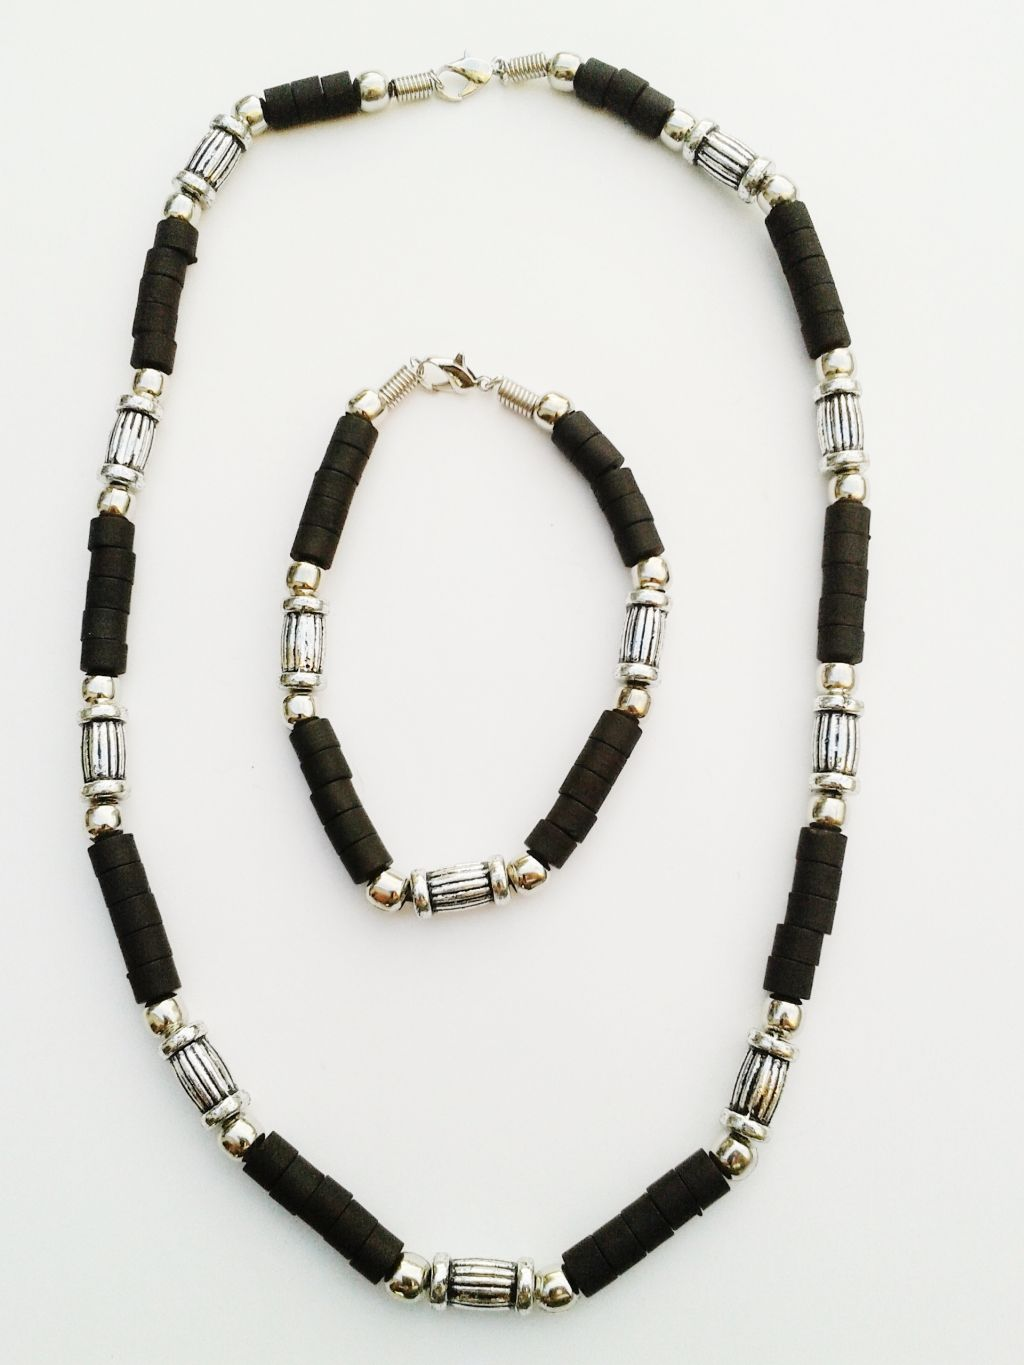 Key West Two-Tone Chrome Black Beach Beaded Necklace Bracelet, Surfer Choker Men's Jewelry